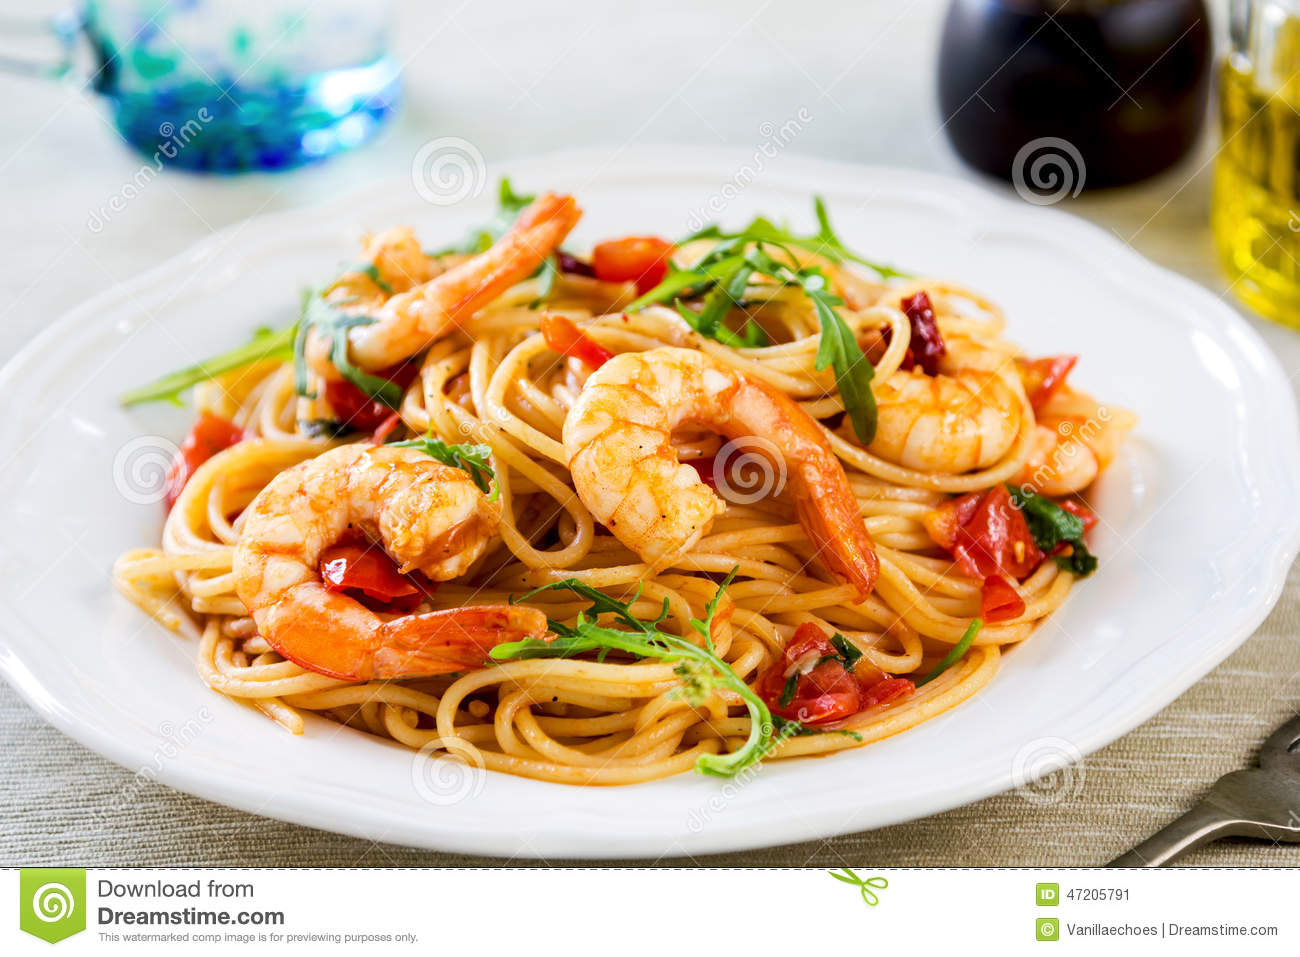 Download Spaghetti With Prawn And Tomato Stock Image - Image of italian, healthy: 47205791